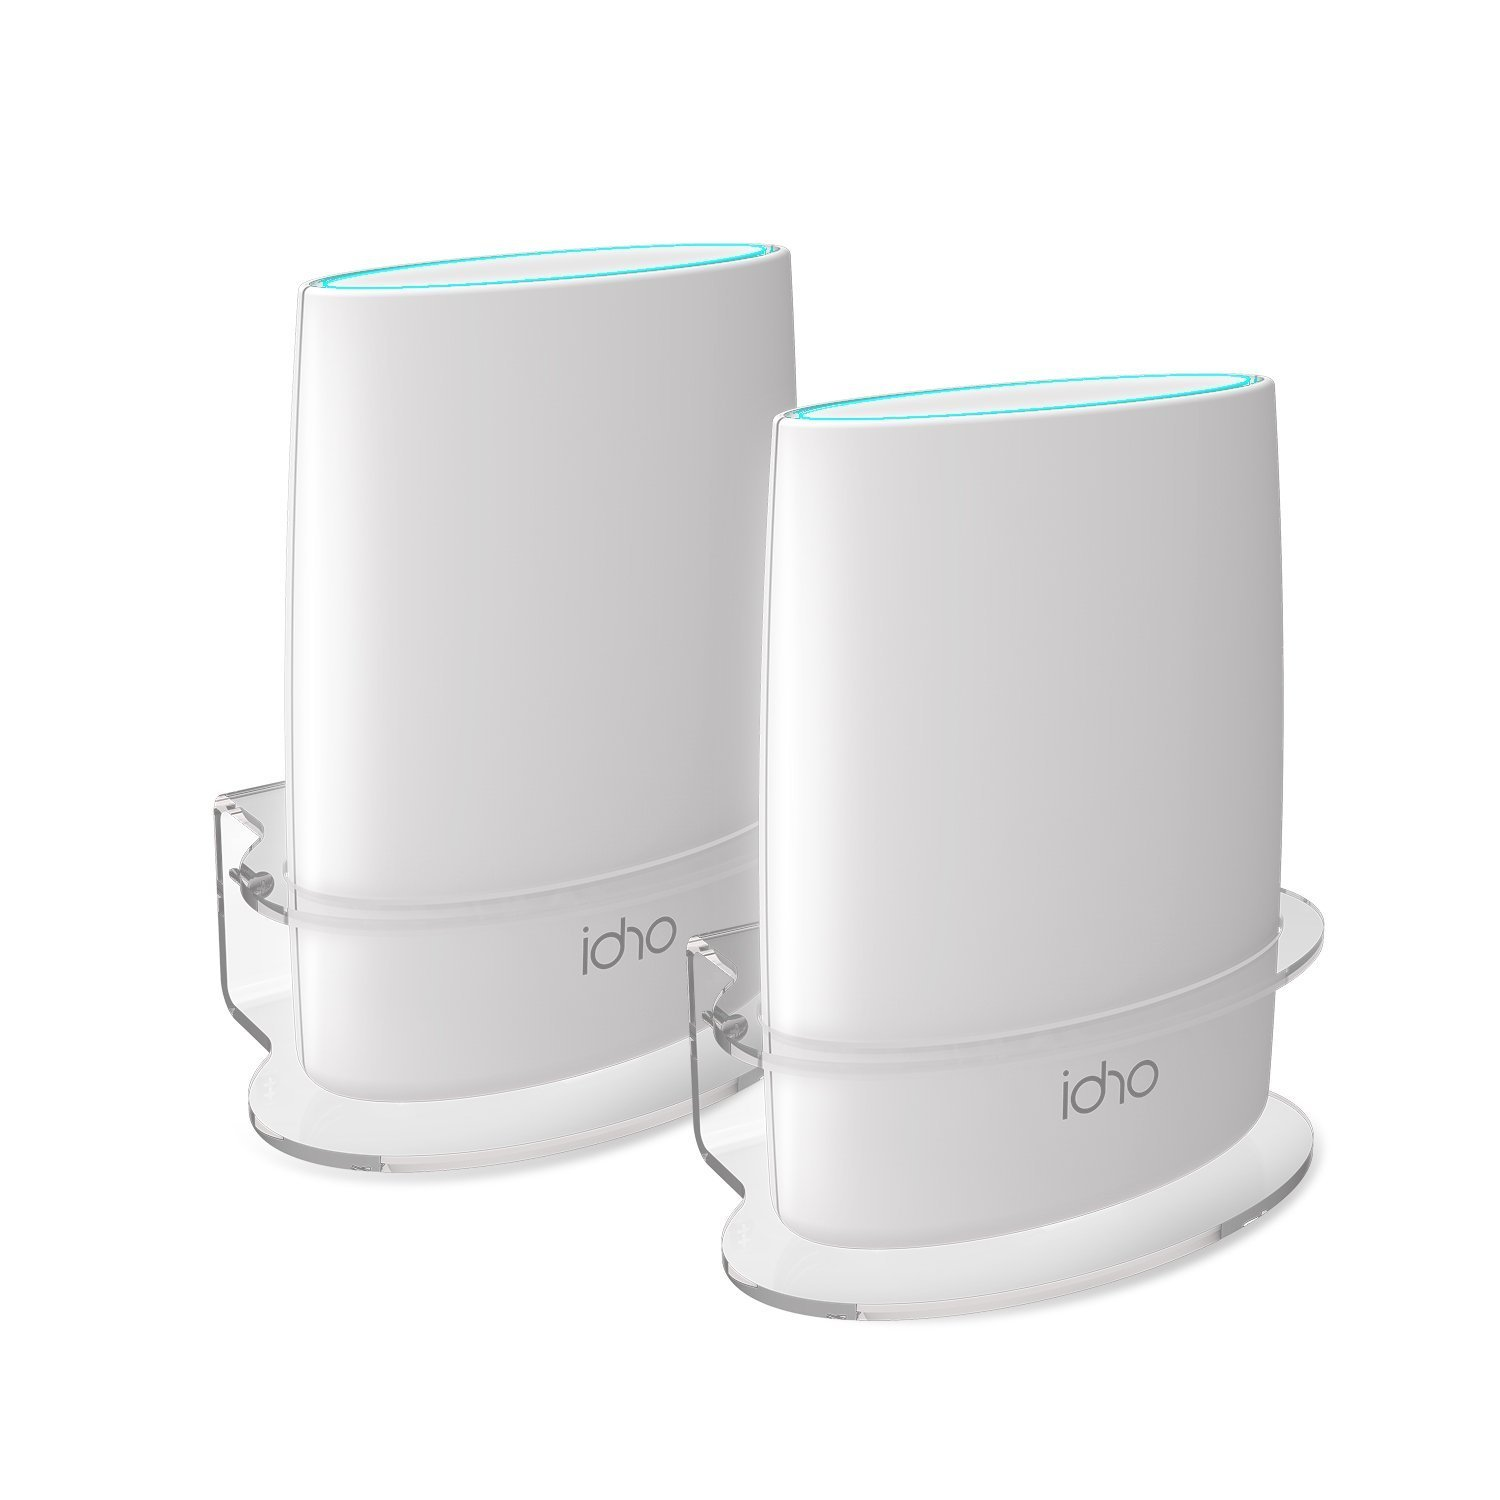 Netgear Orbi Wall Mount, BASSTOP Sturdy Clear Acrylic Wall Mount Bracket Compatible with Orbi WiFi Router RBS40, RBK40, RBS50, RBK50, AC2200, AC3000 Tri Band Home WiFi Router- (2 Packs) by BASSTOP